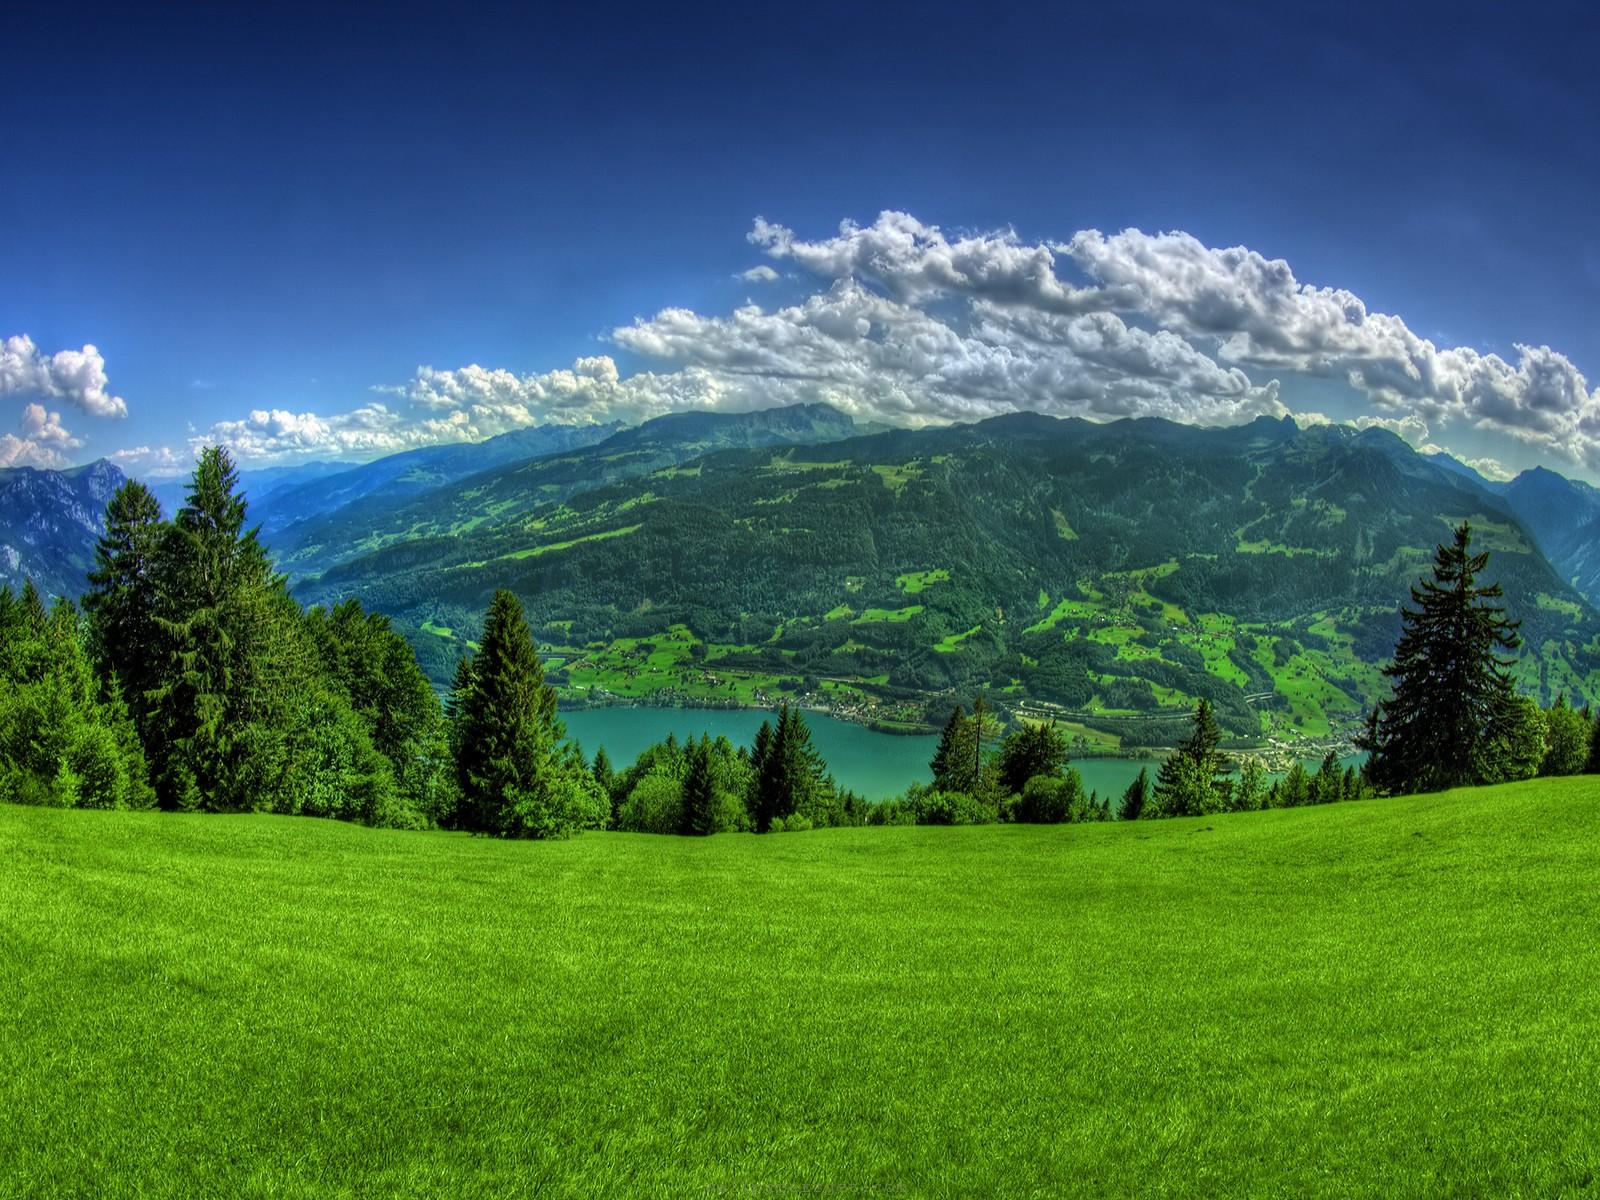 HD Widescreen Backgrounds Wallpapers: May 2012